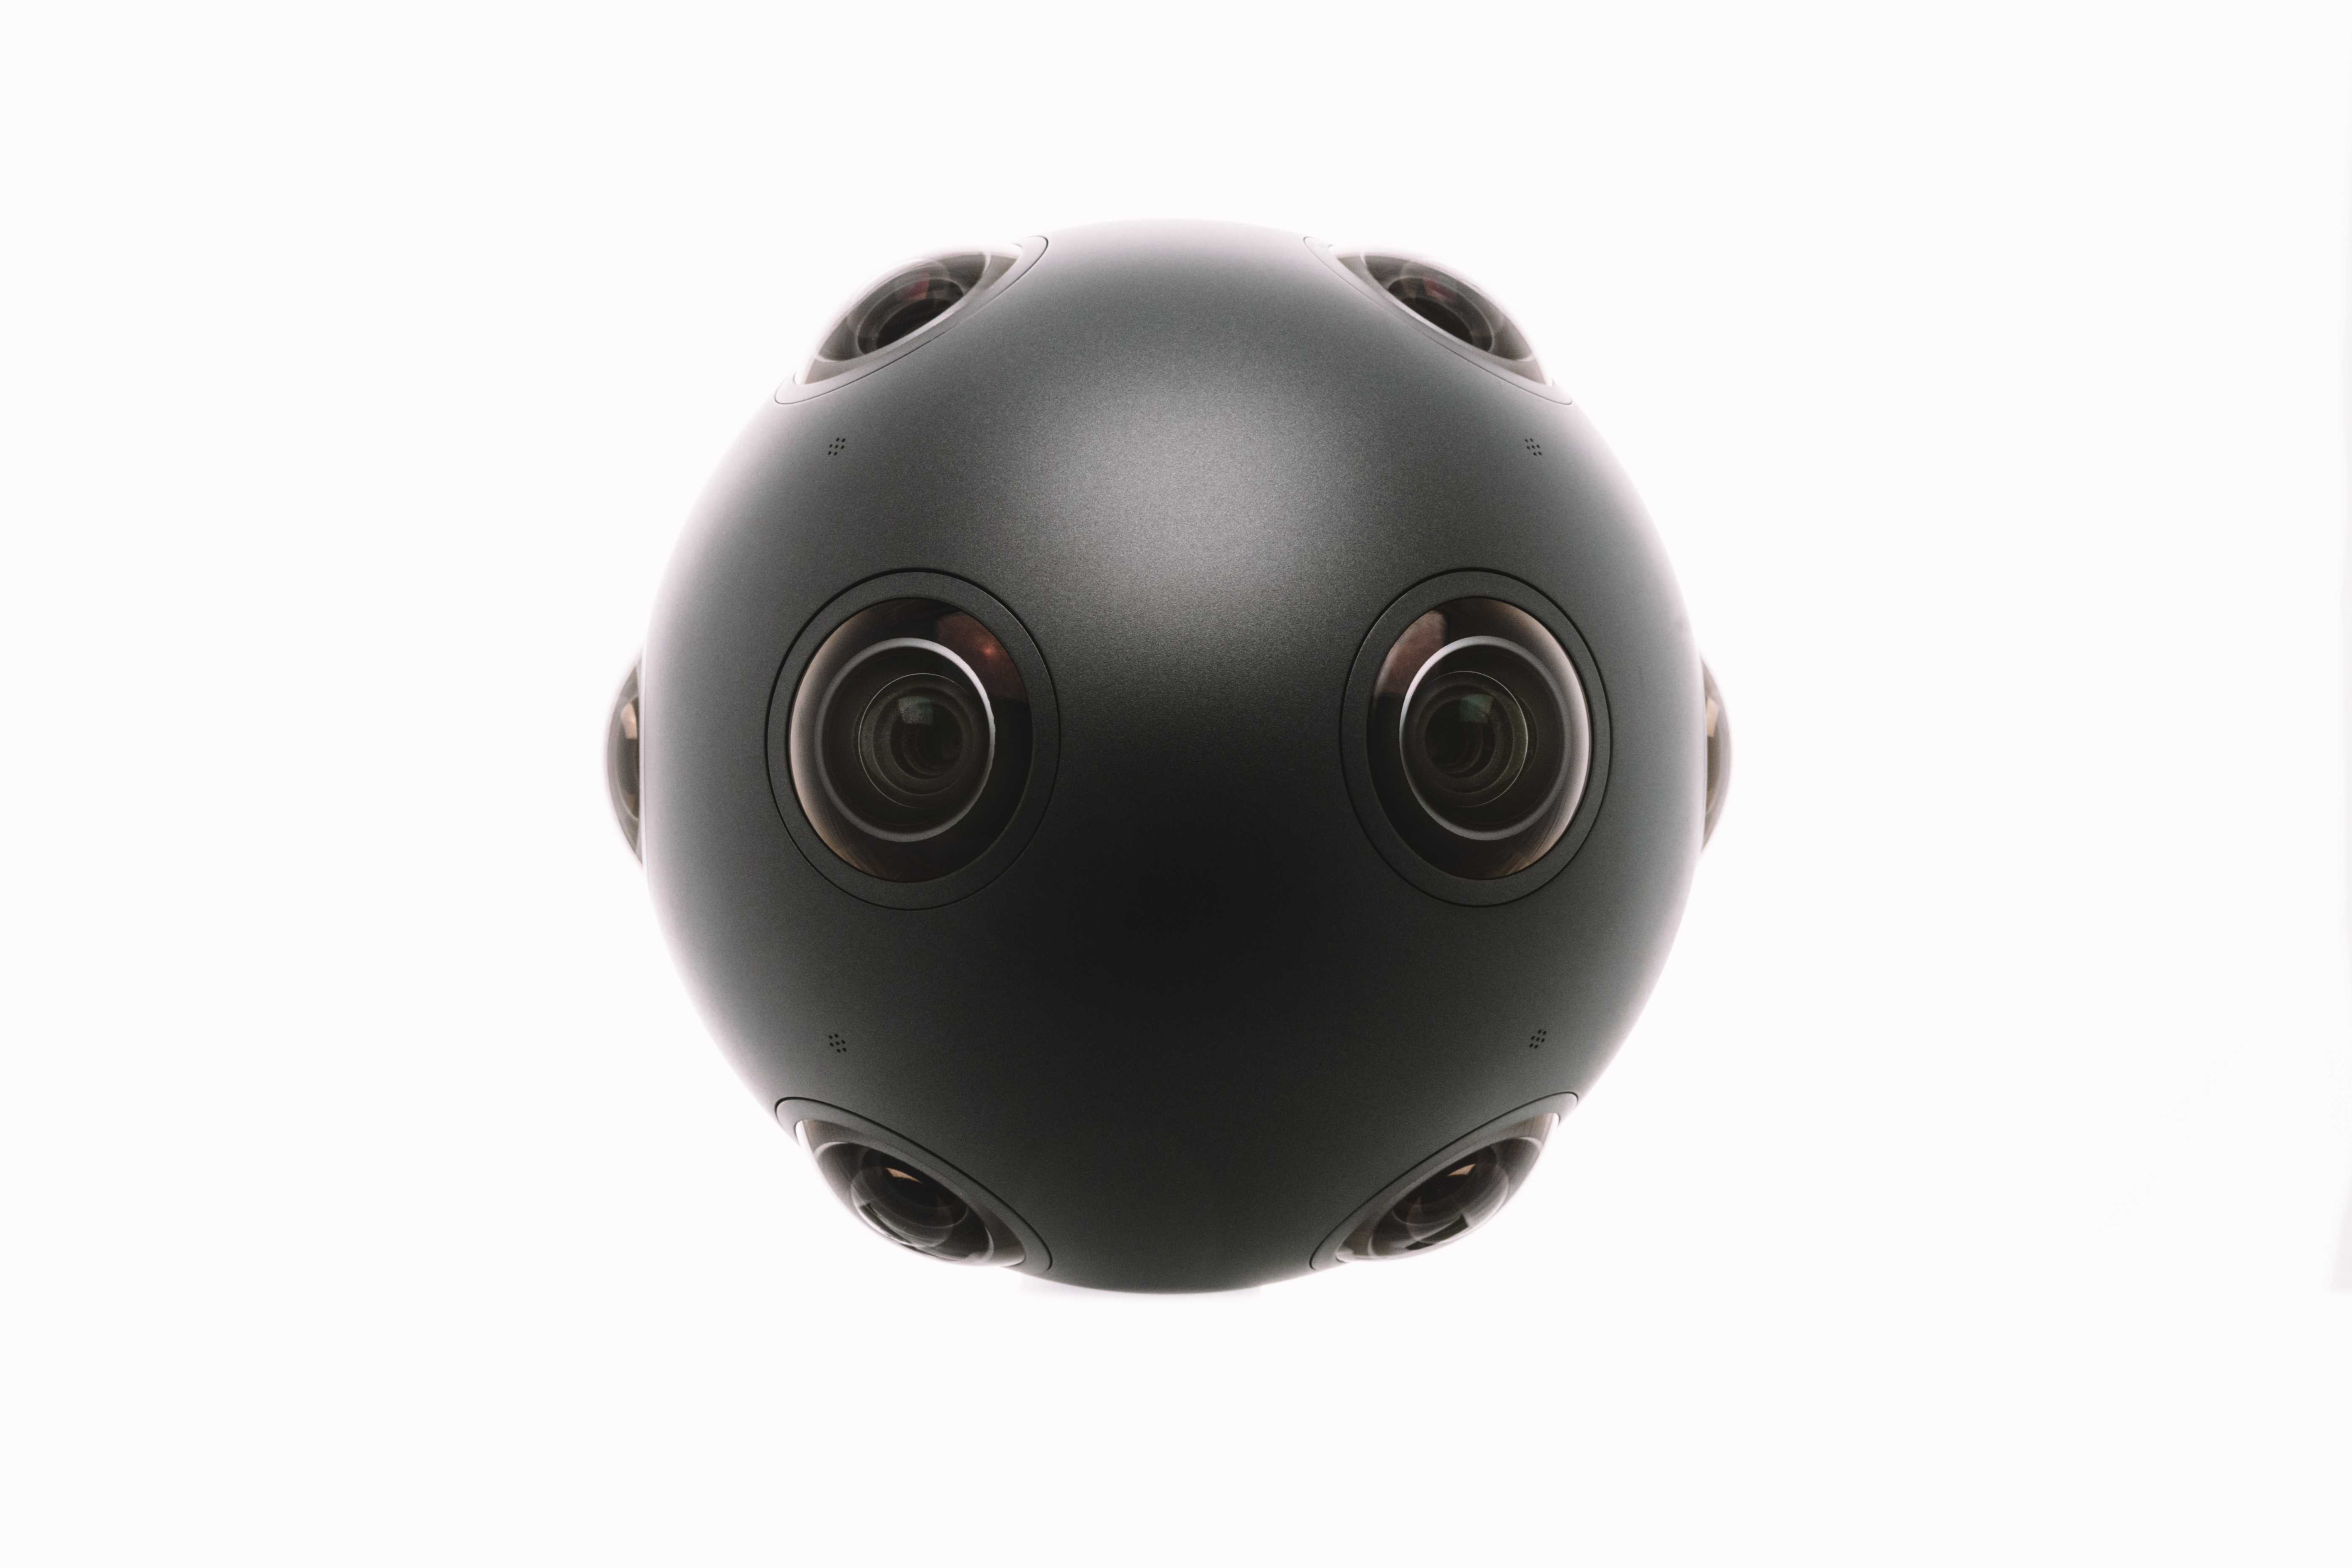 Nokia Technologies has entered the virtual reality market with the Ozo 360-degree camera.